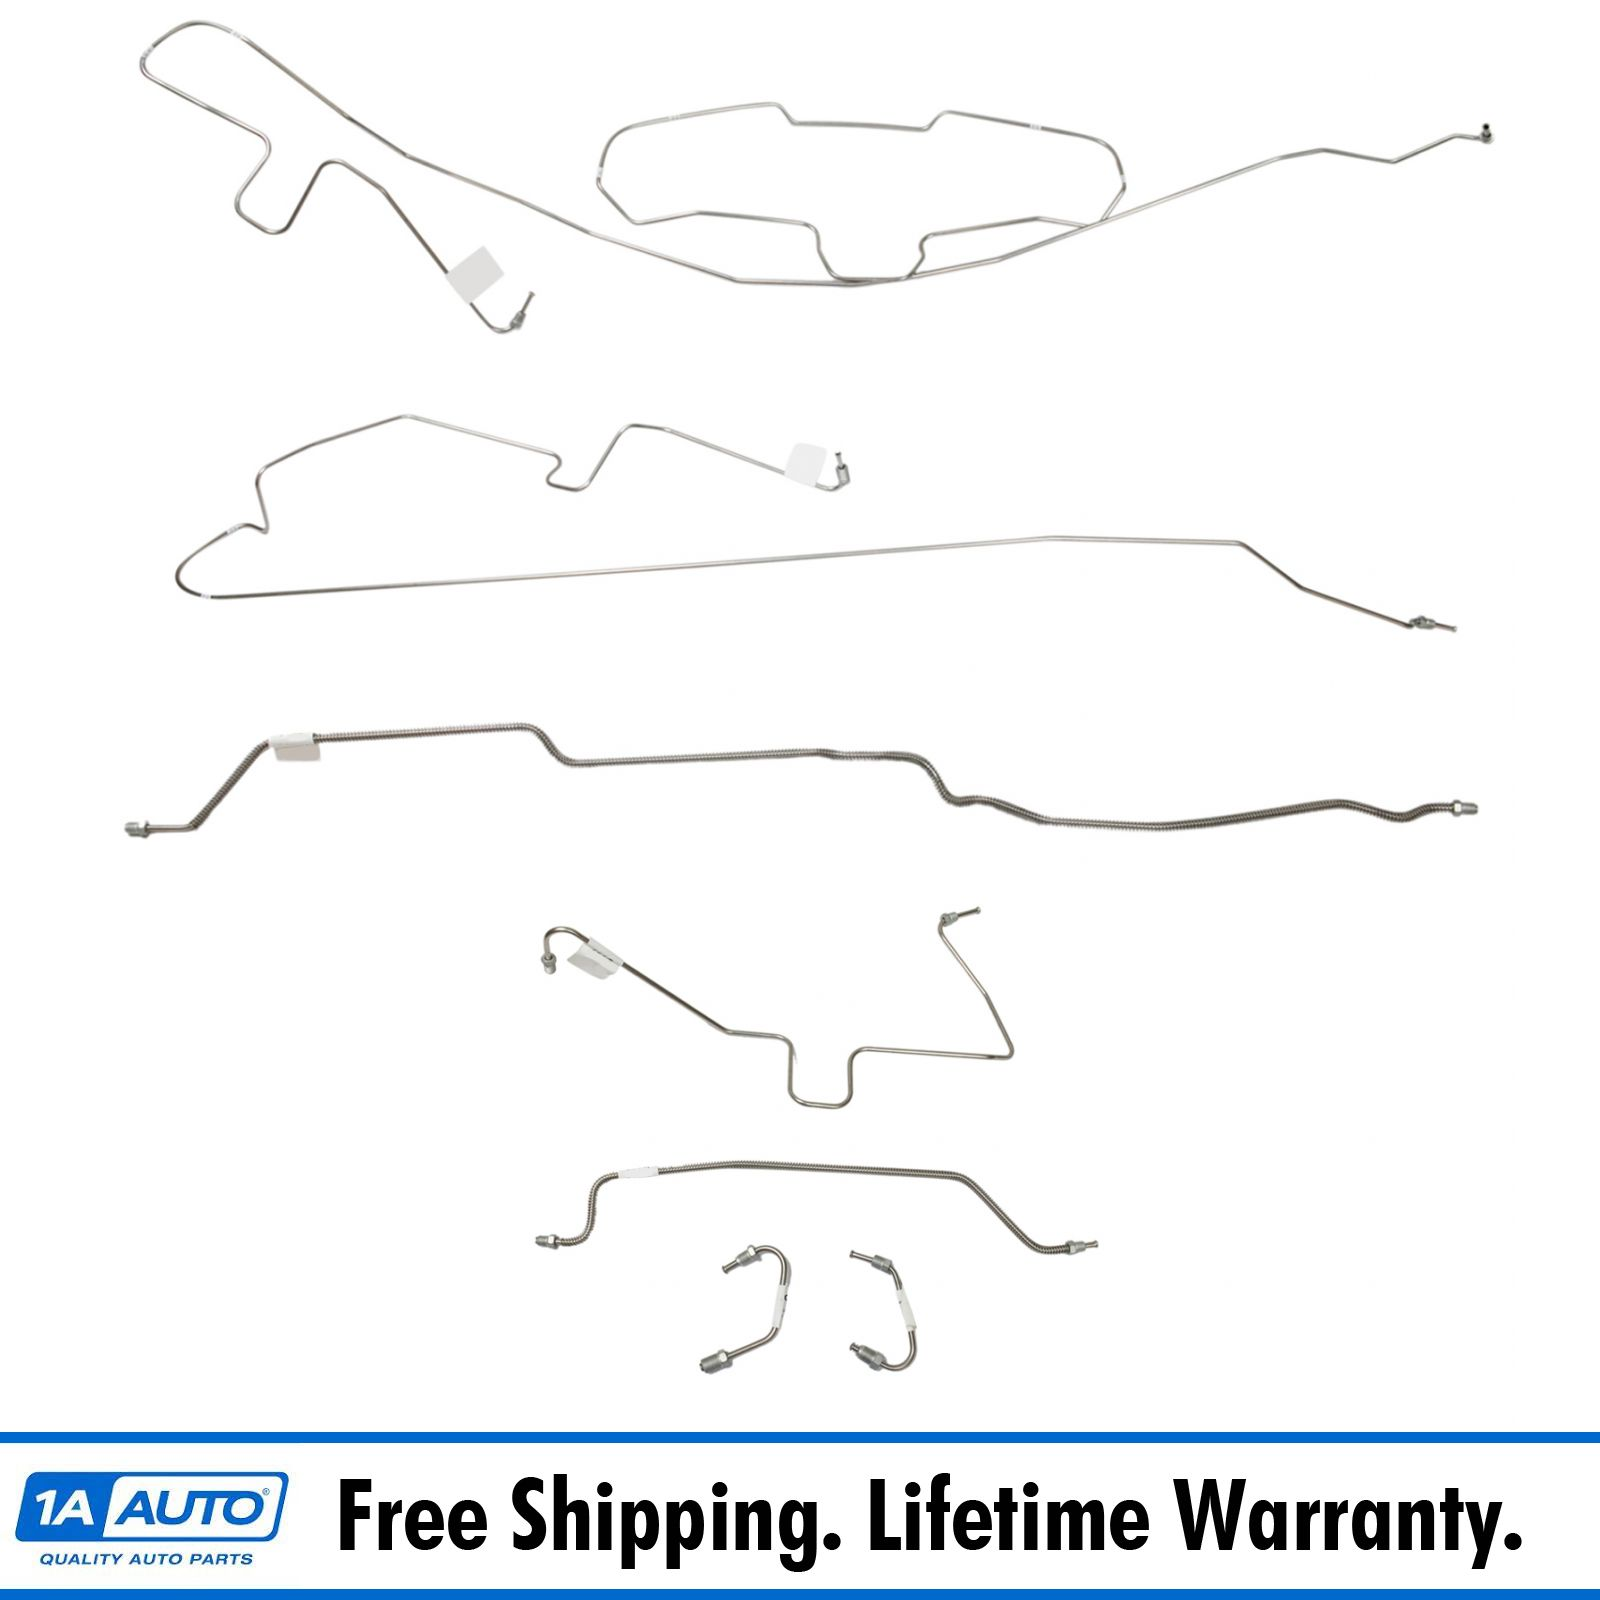 Fits 1995 Jeep Wrangler YJ With ABS Complete Power Brake Line Set Kit OE Steel